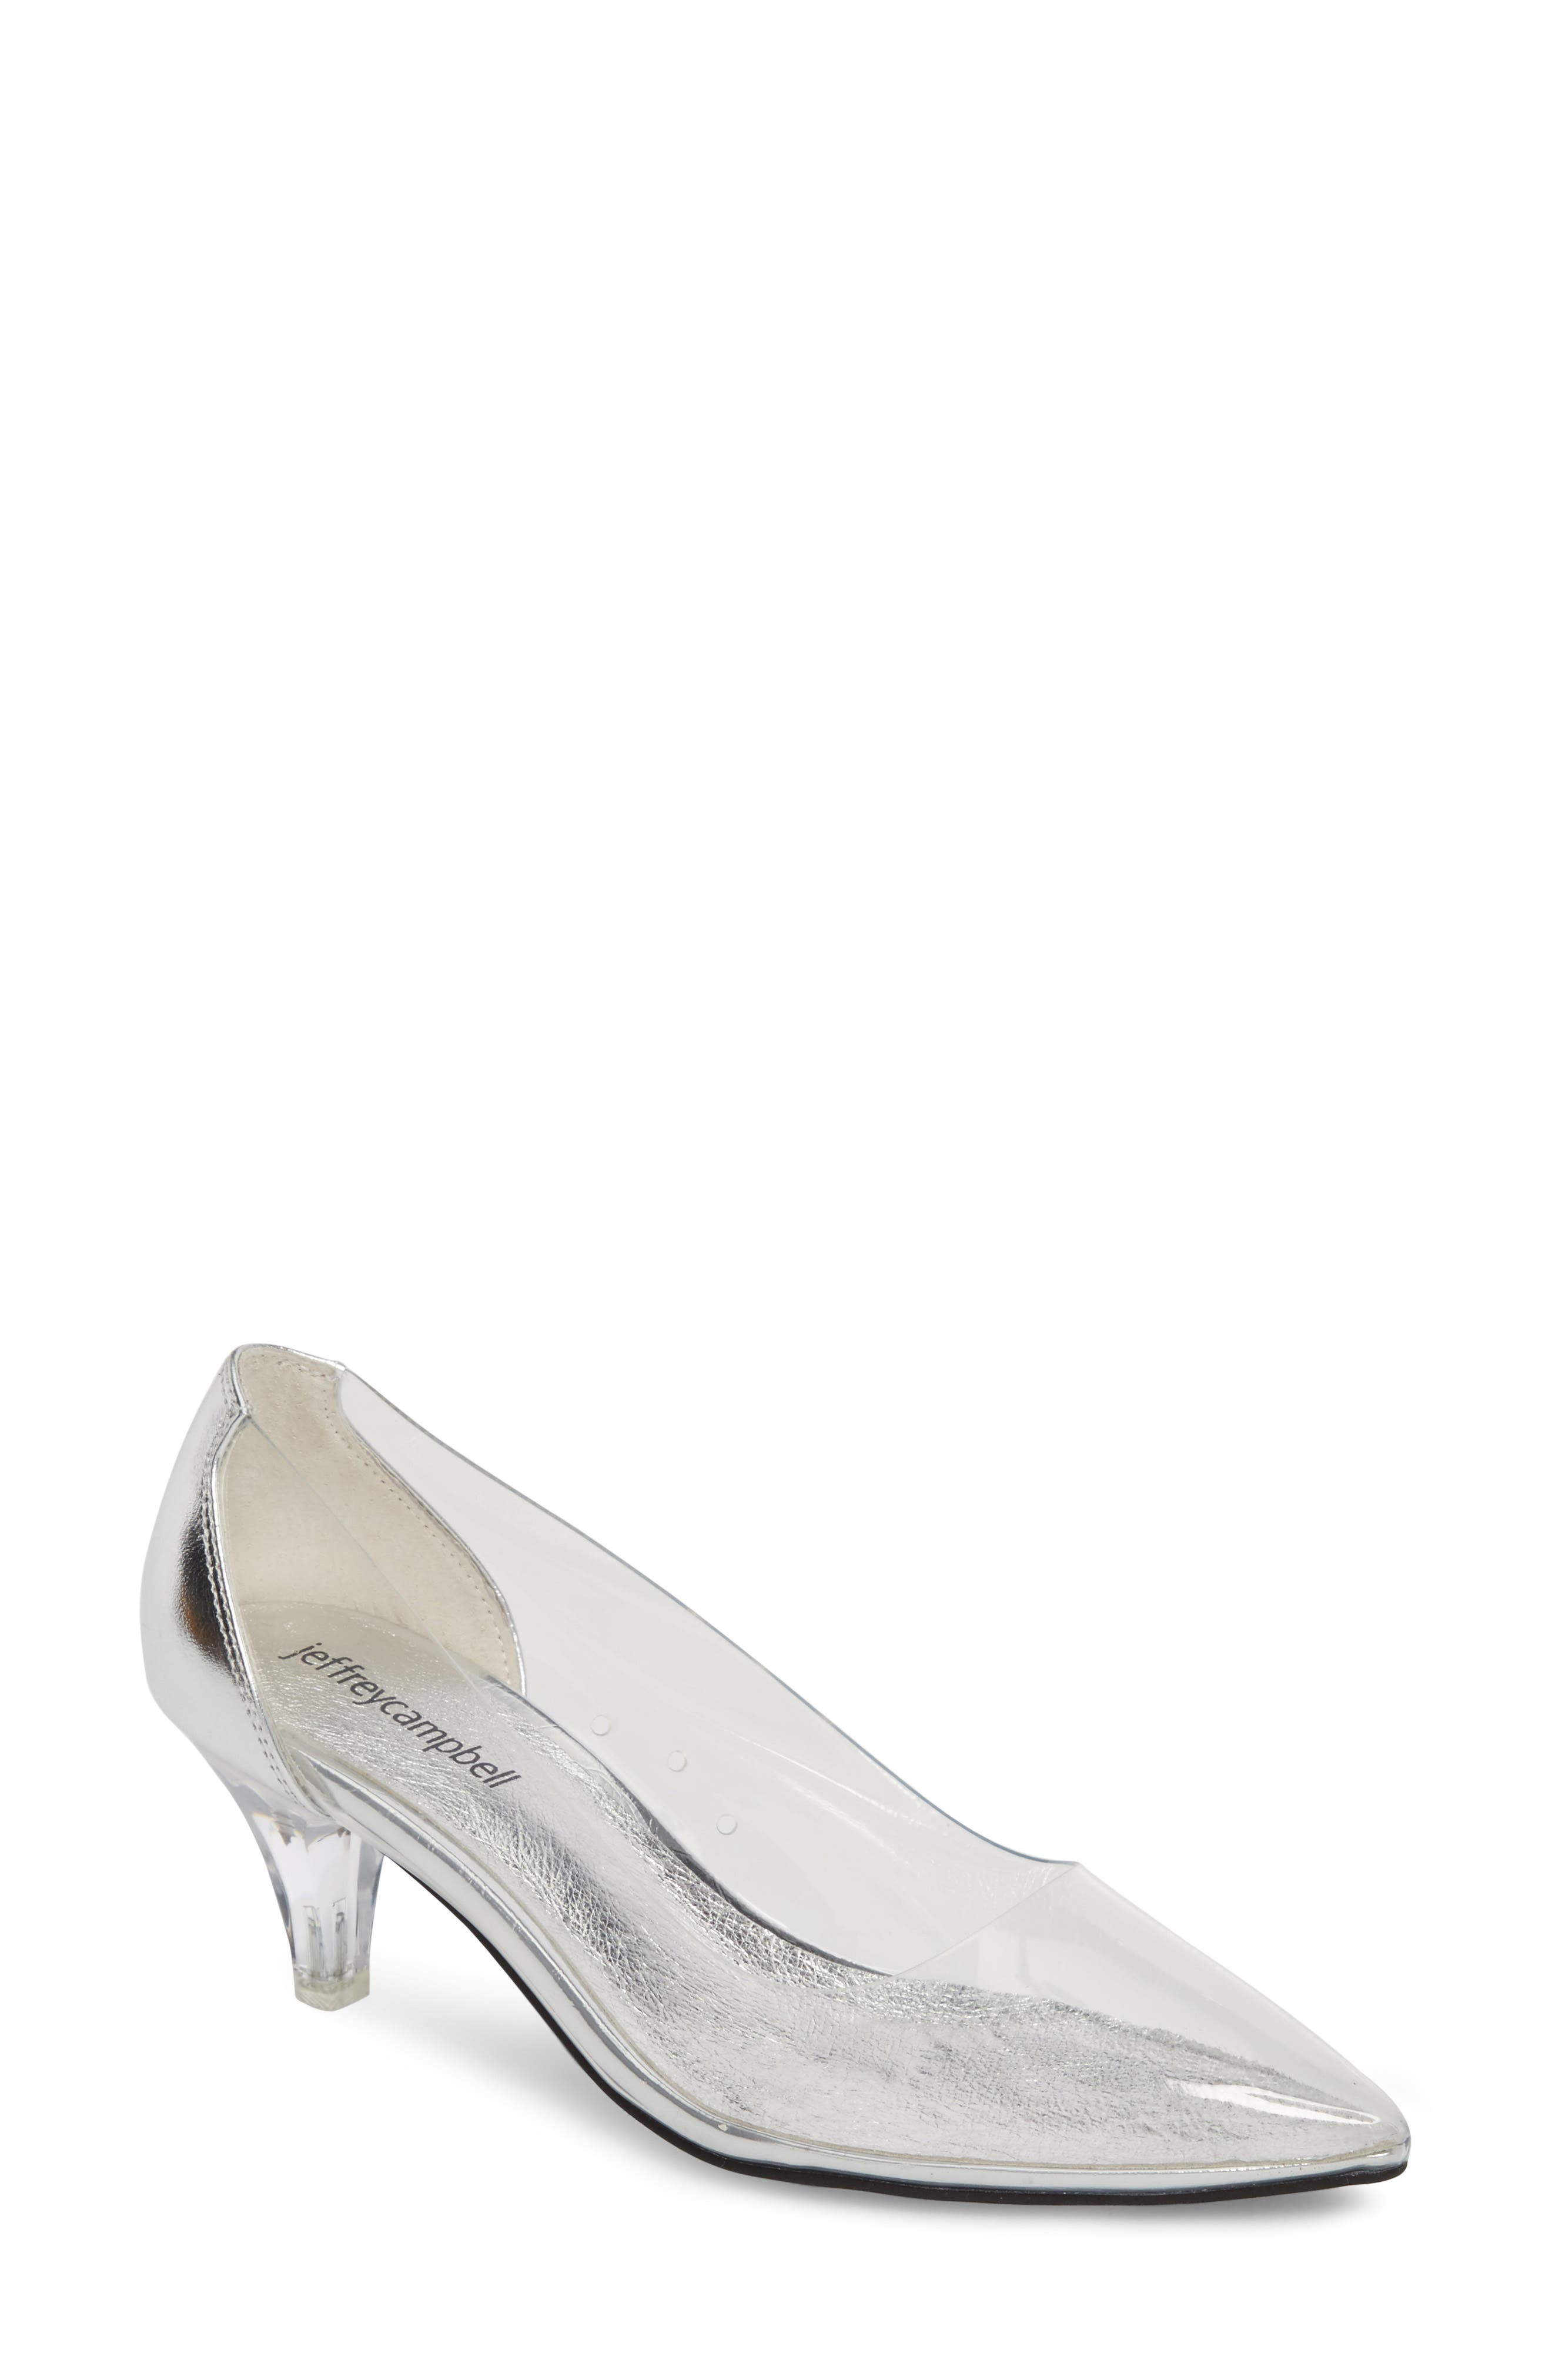 Gracienne Transparent Pump,                         Main,                         color, CLEAR/ SILVER LEATHER